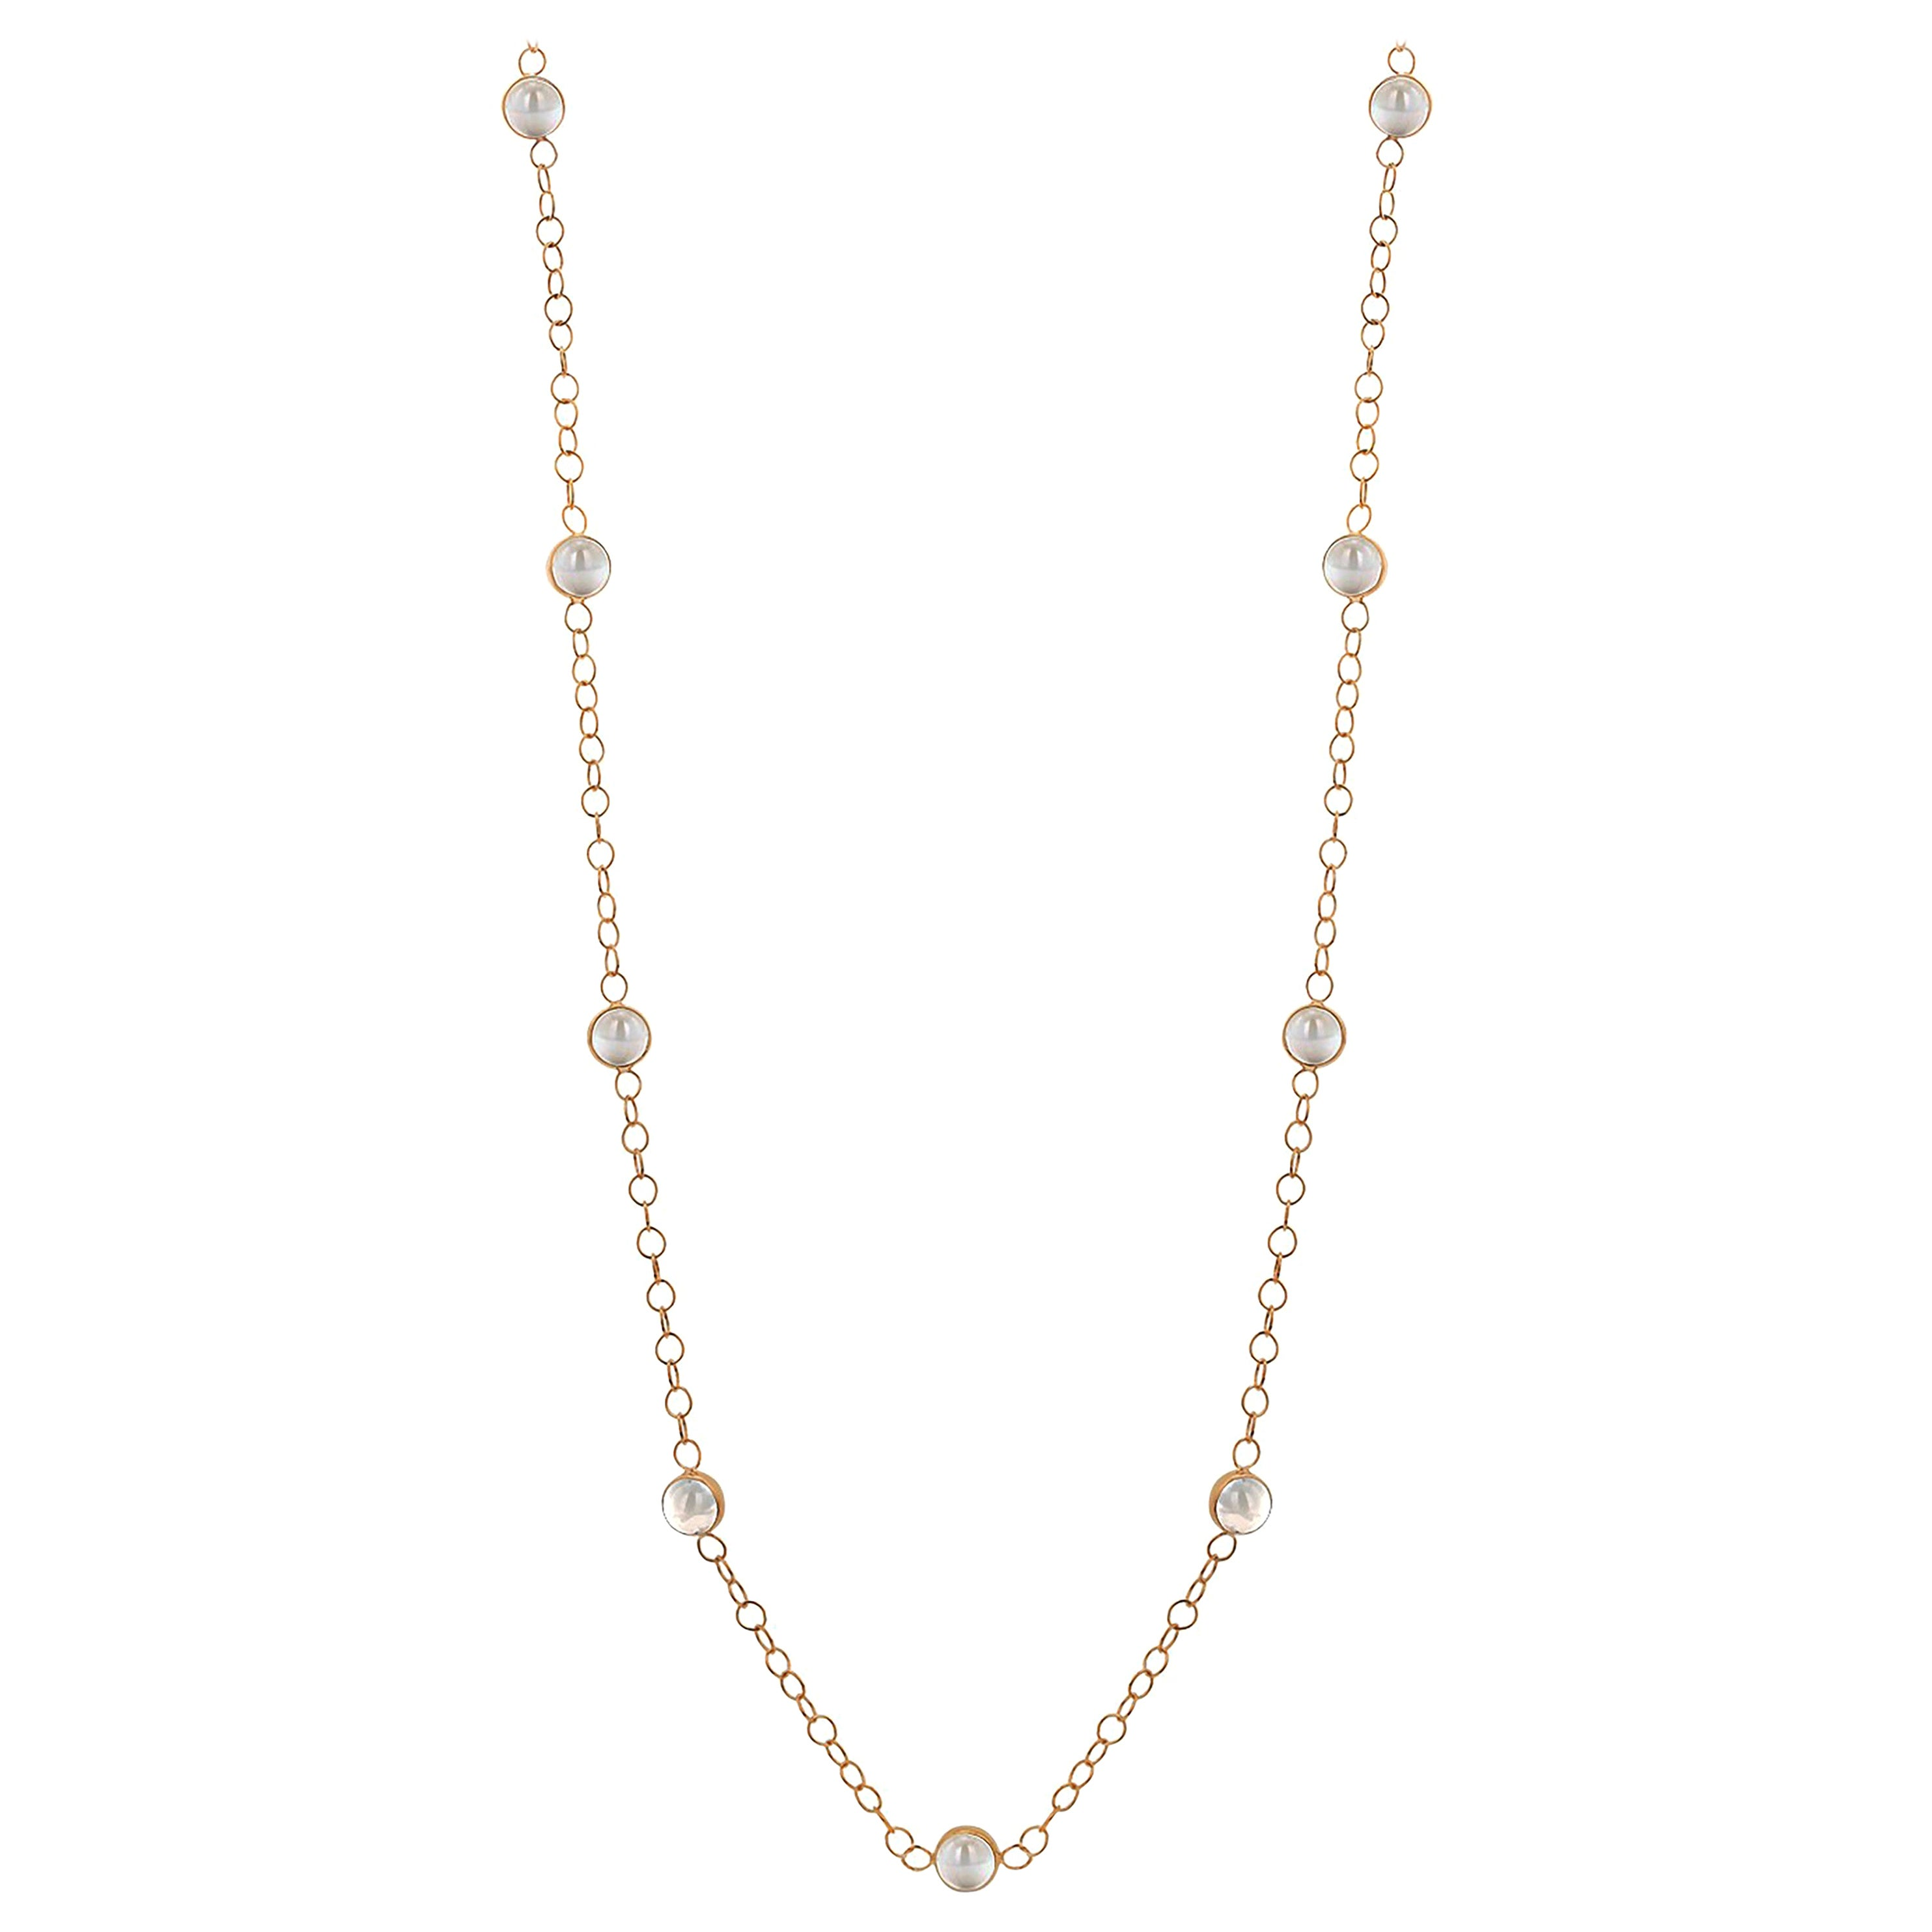 Ten Natural White Moonstones Bezel Necklace Silver Gold-Plated